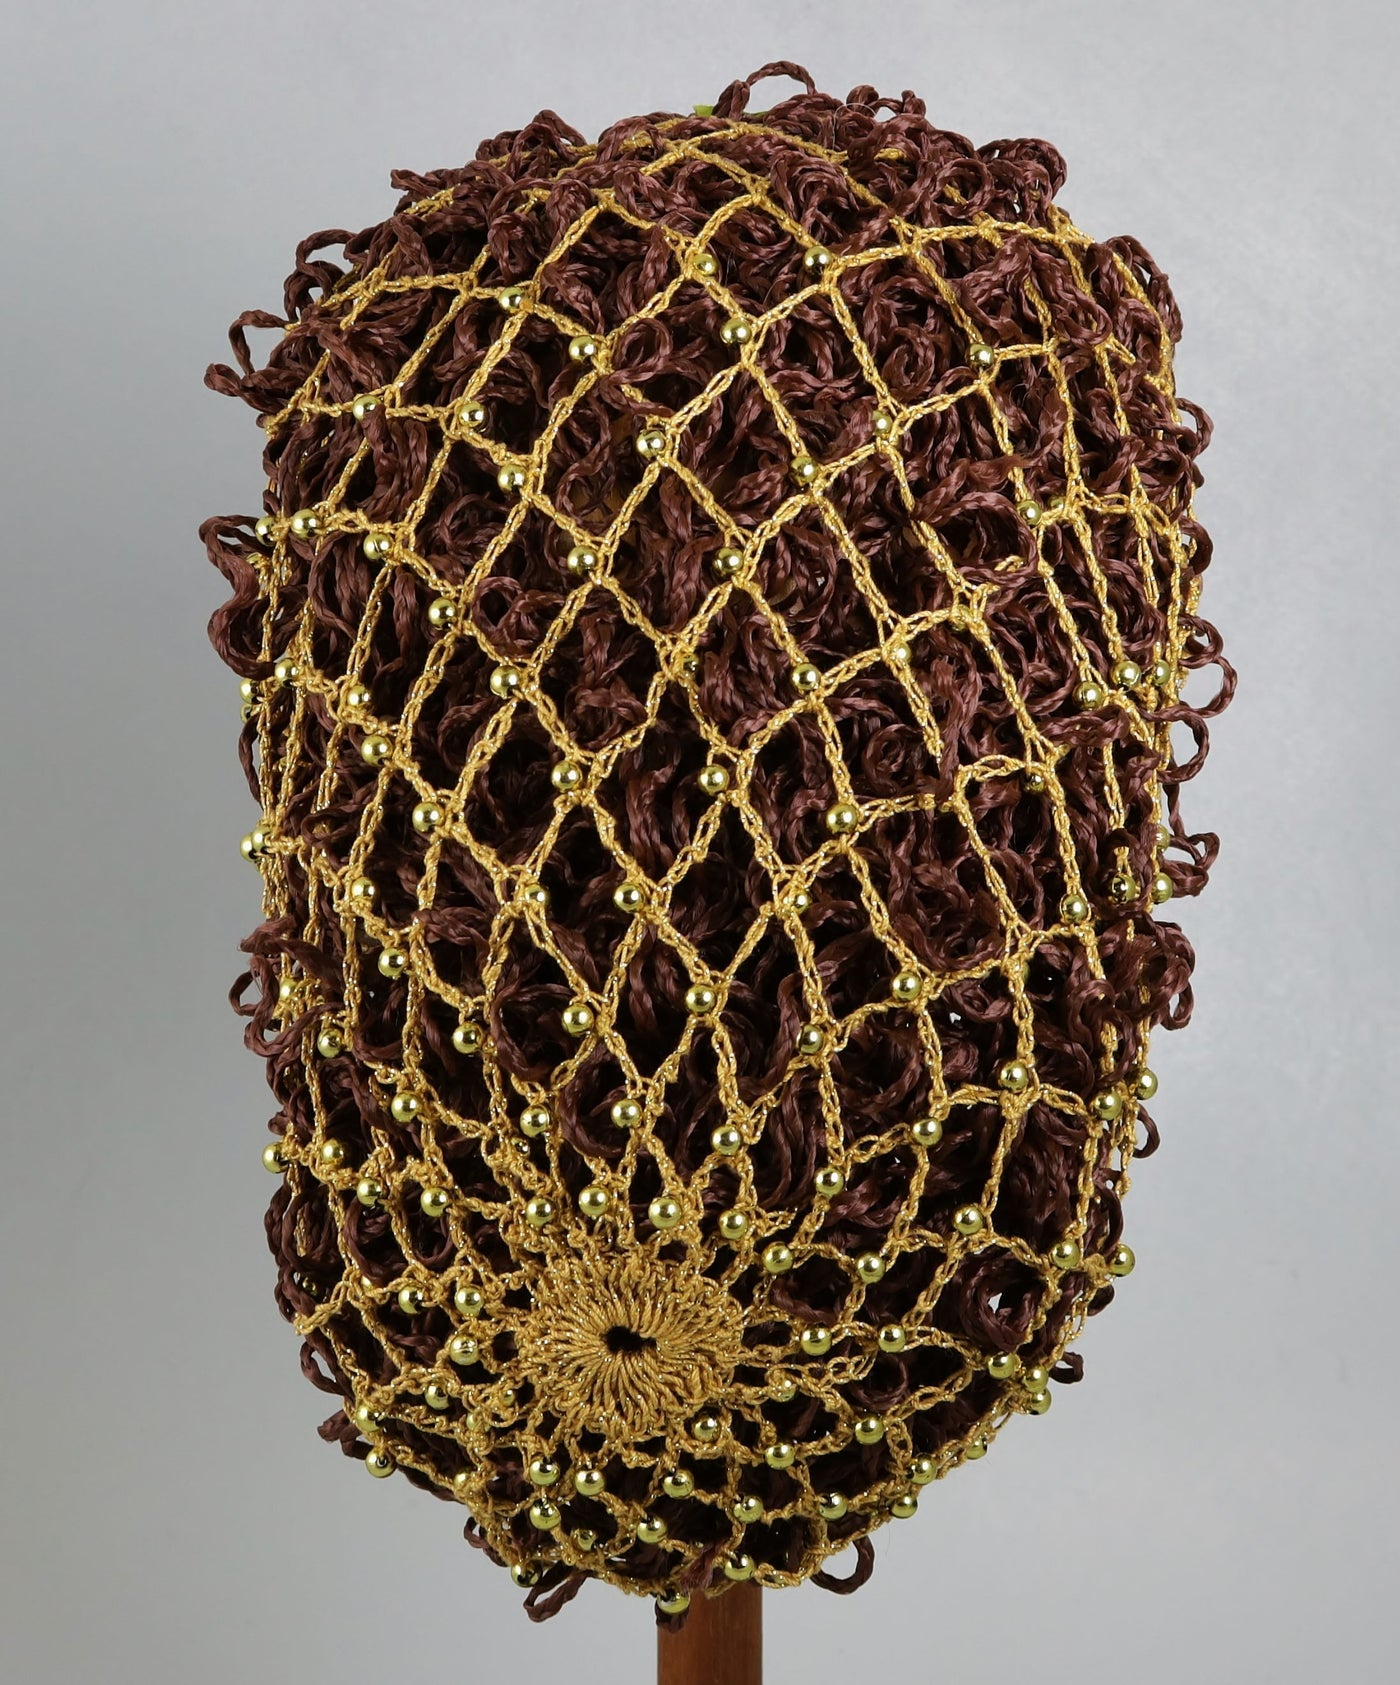 Hand Crocheted Snood - Gold Metallic / Gold Beads - Tall Toad